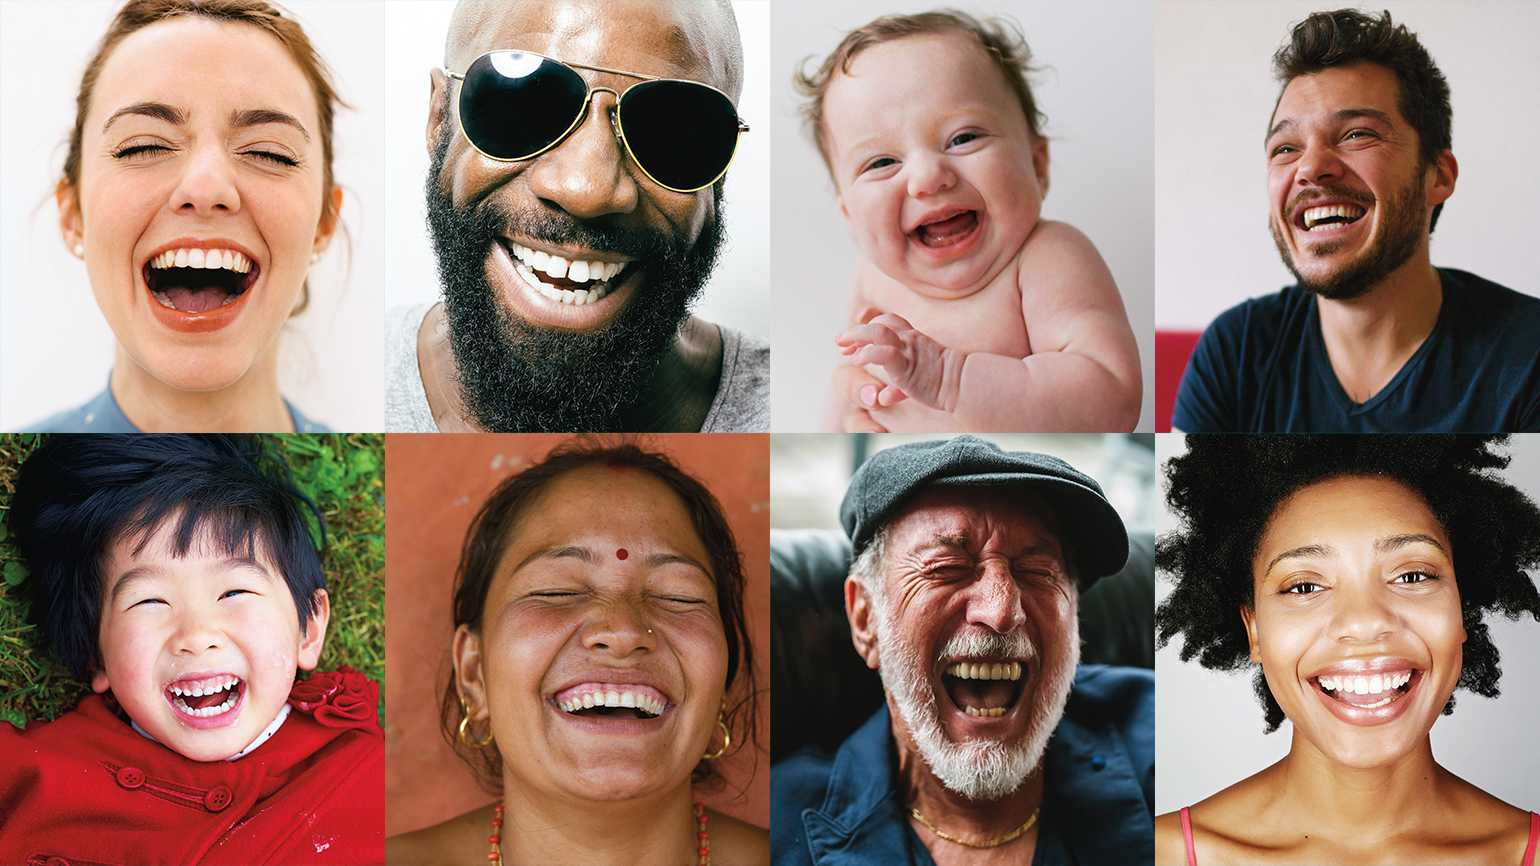 An assortment of laughing faces